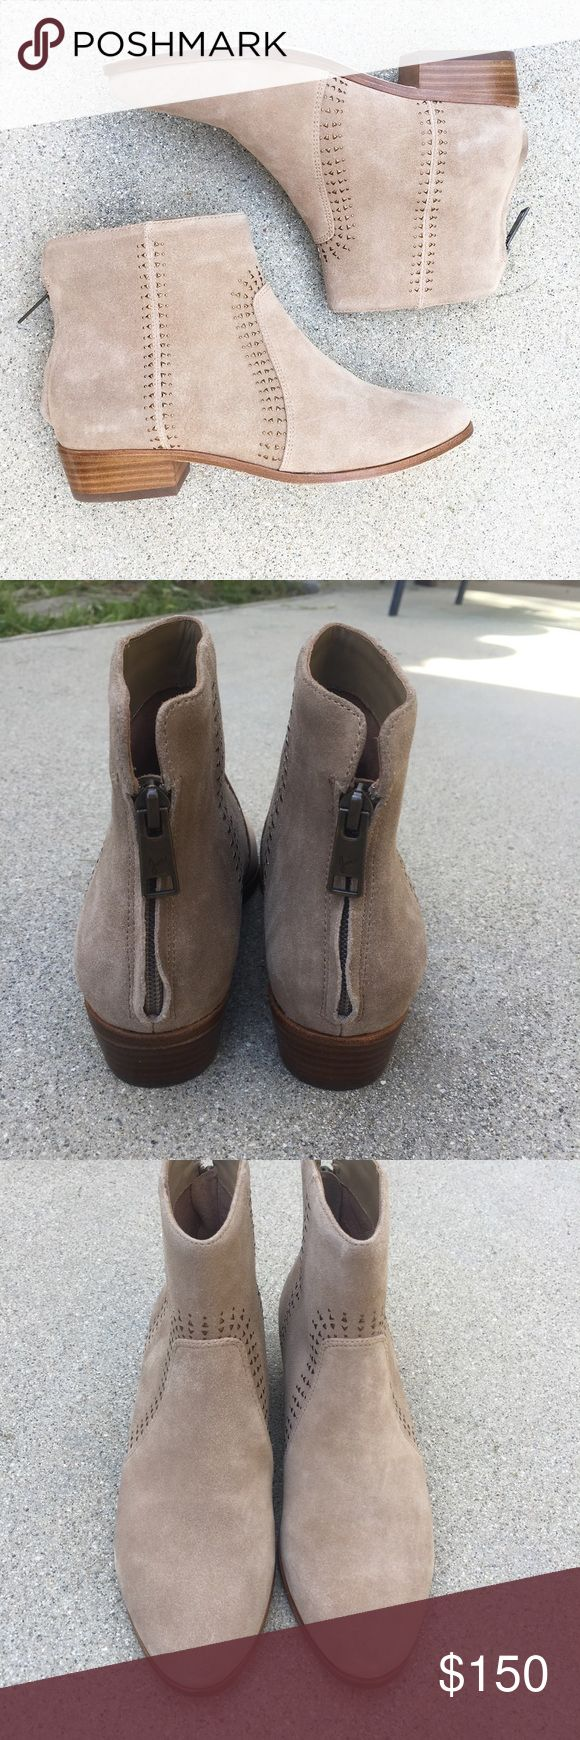 Joie Lucy Embellished Suede Tan Booties New without box. Size 37 or 7. Joie Shoes Ankle Boots & Booties